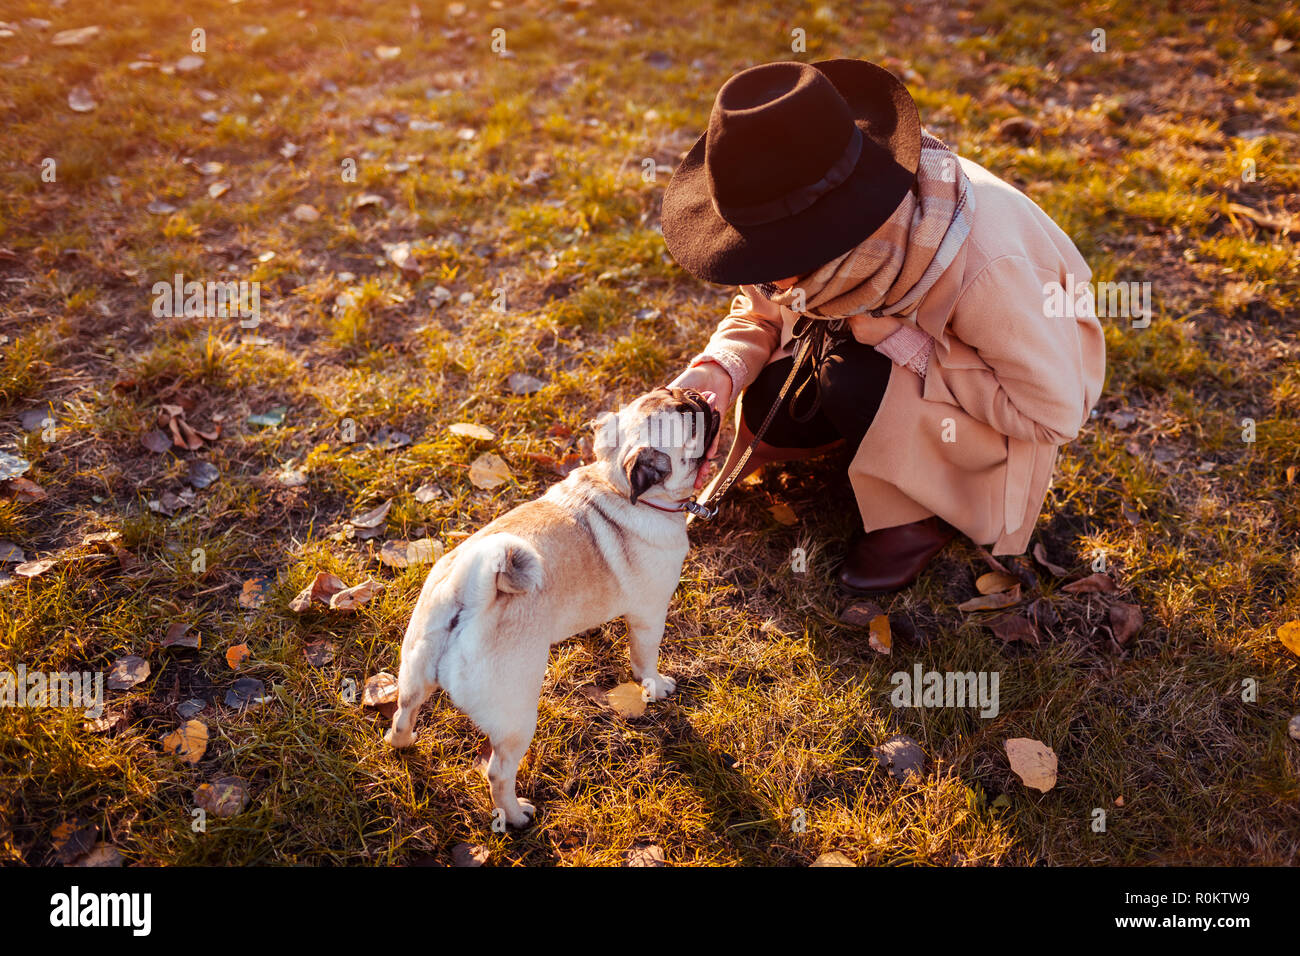 Master walking pug dog in autumn park. Woman petting puppy. - Stock Image